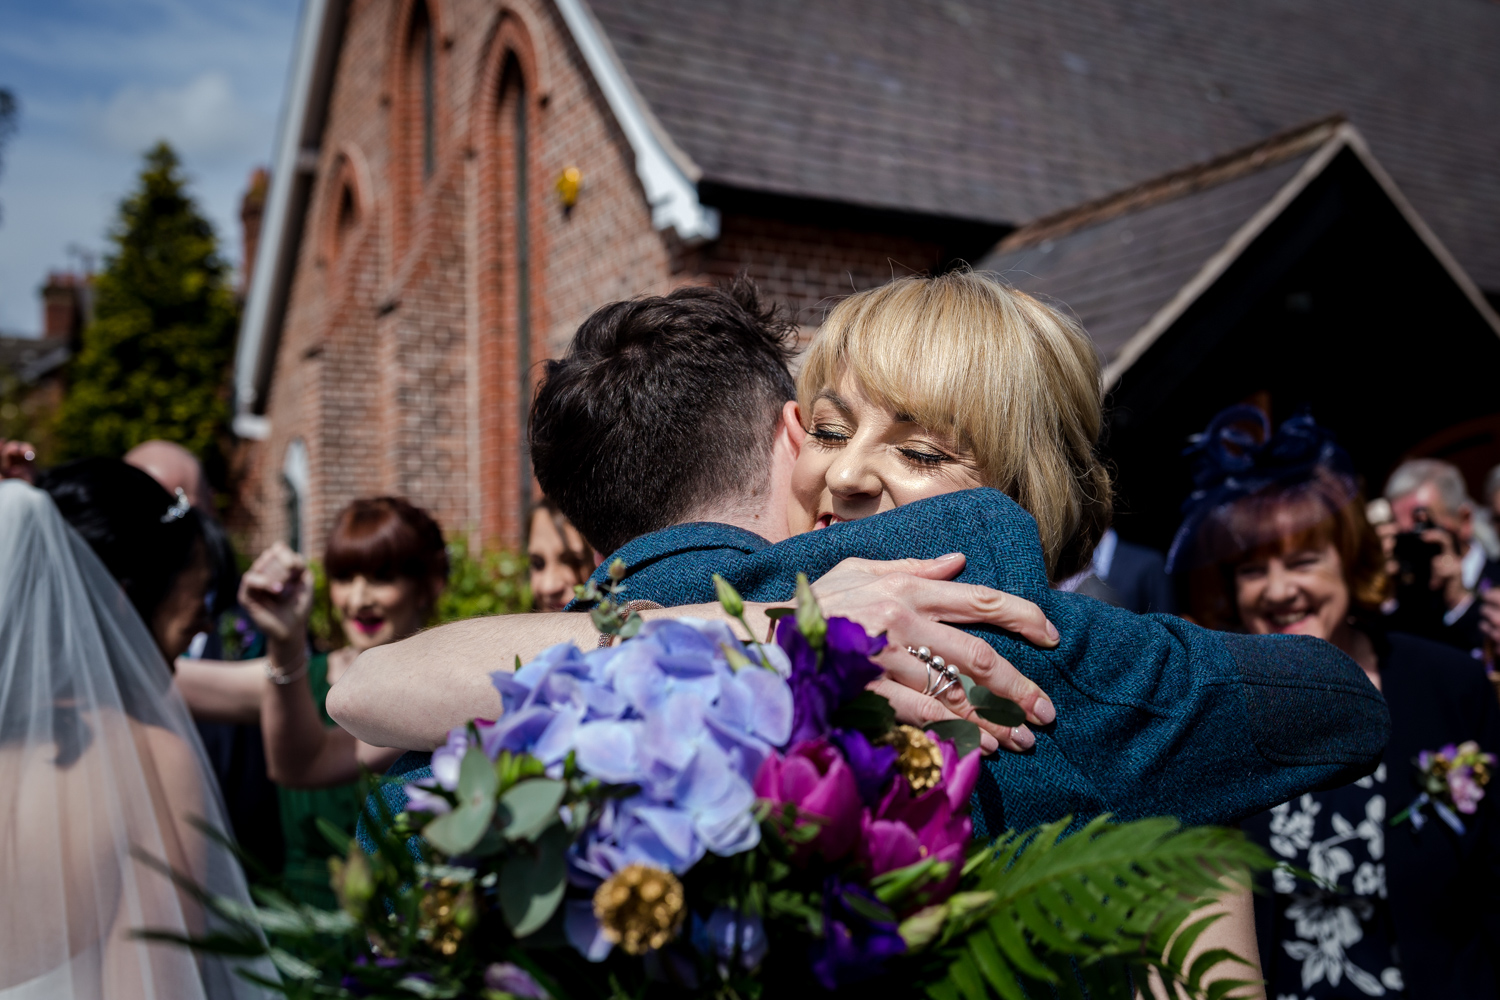 Big hugs after the wedding ceremony